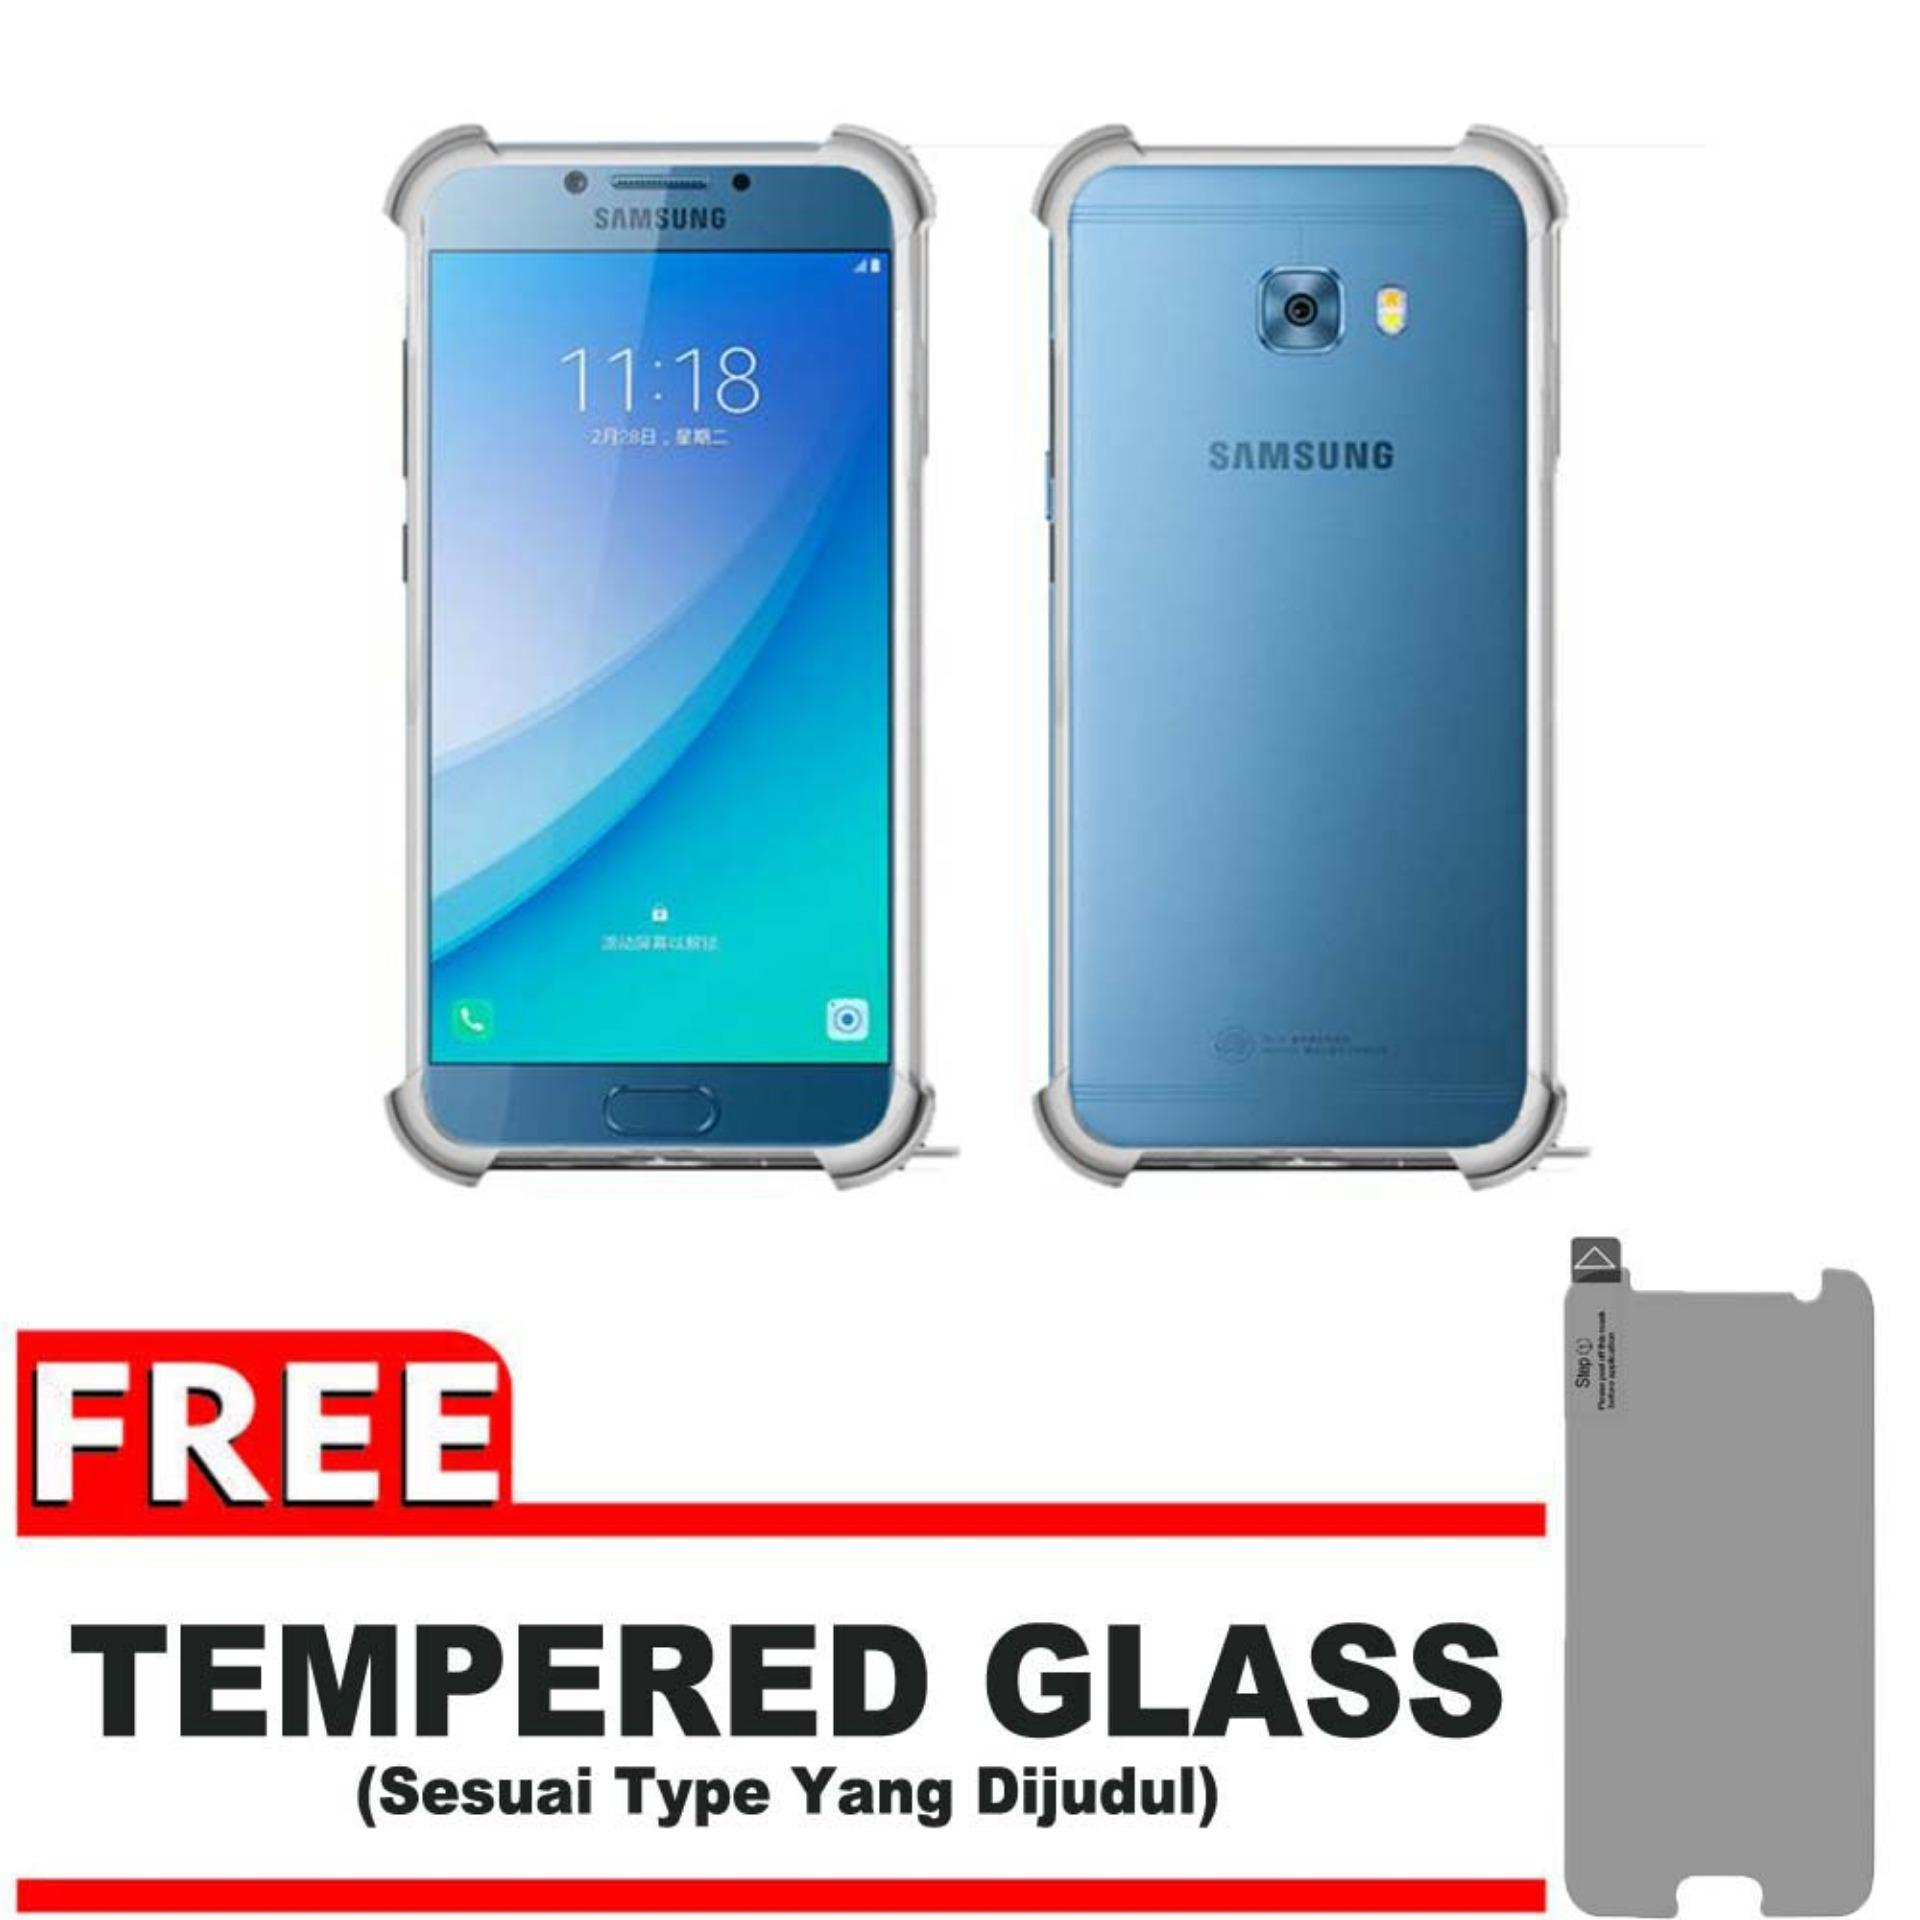 ShockCase for Samsung Galaxy C5 Pro / 4G LTE / Duos | Premium Softcase Jelly Anti Crack Shockproof - Gratis Free Tempered Glass Protector - Transparan